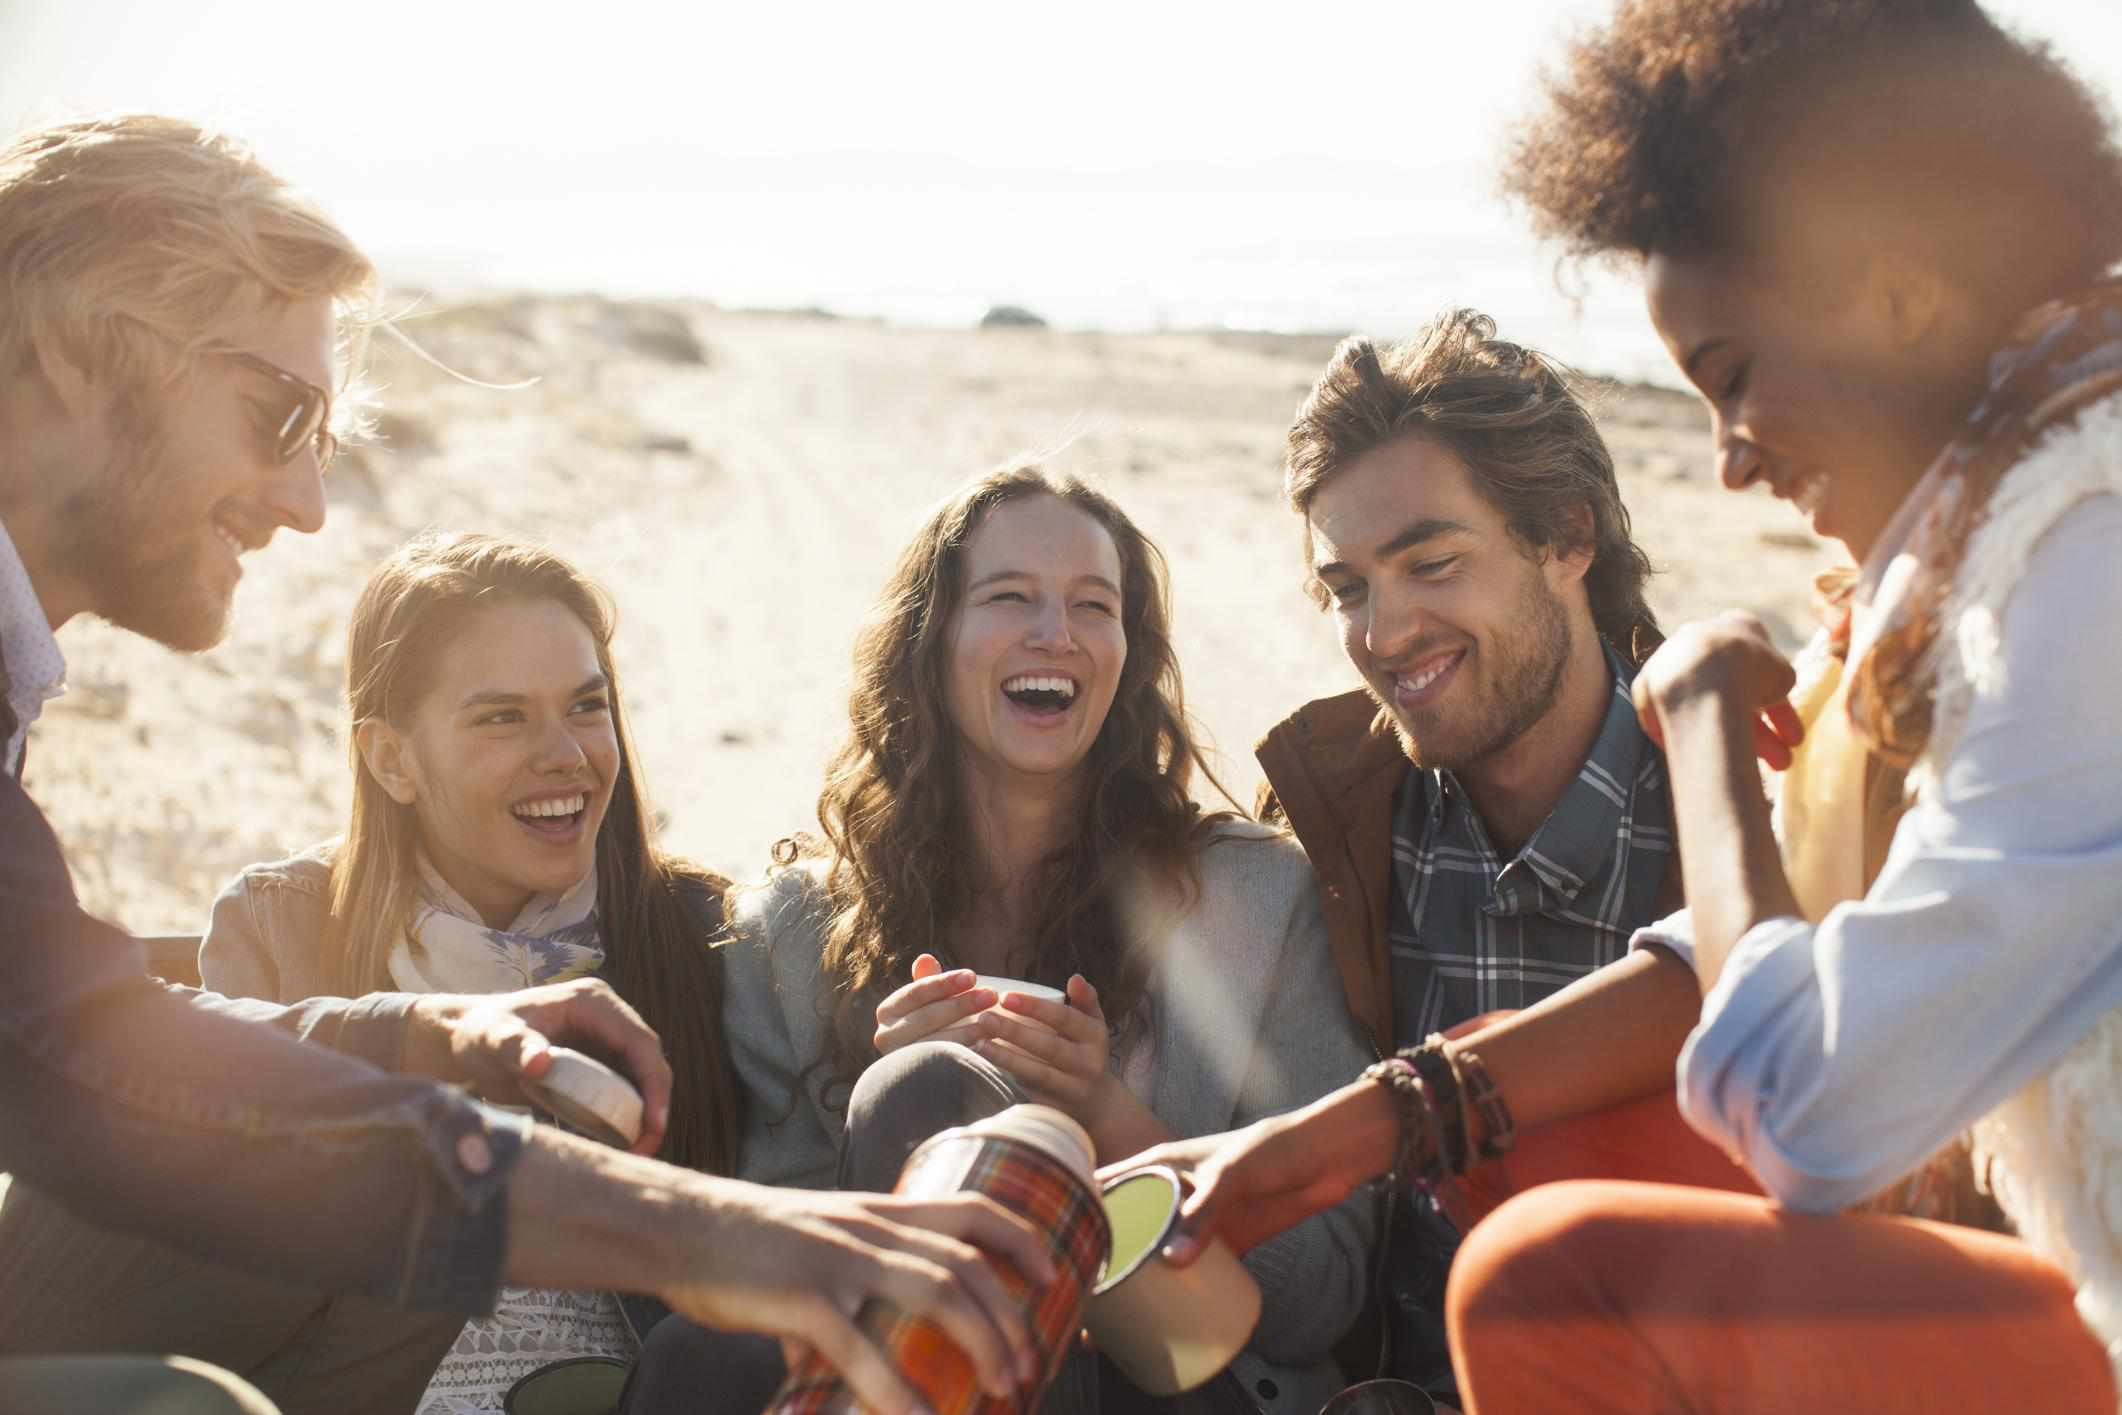 How to Develop a Healthy Platonic Friendship